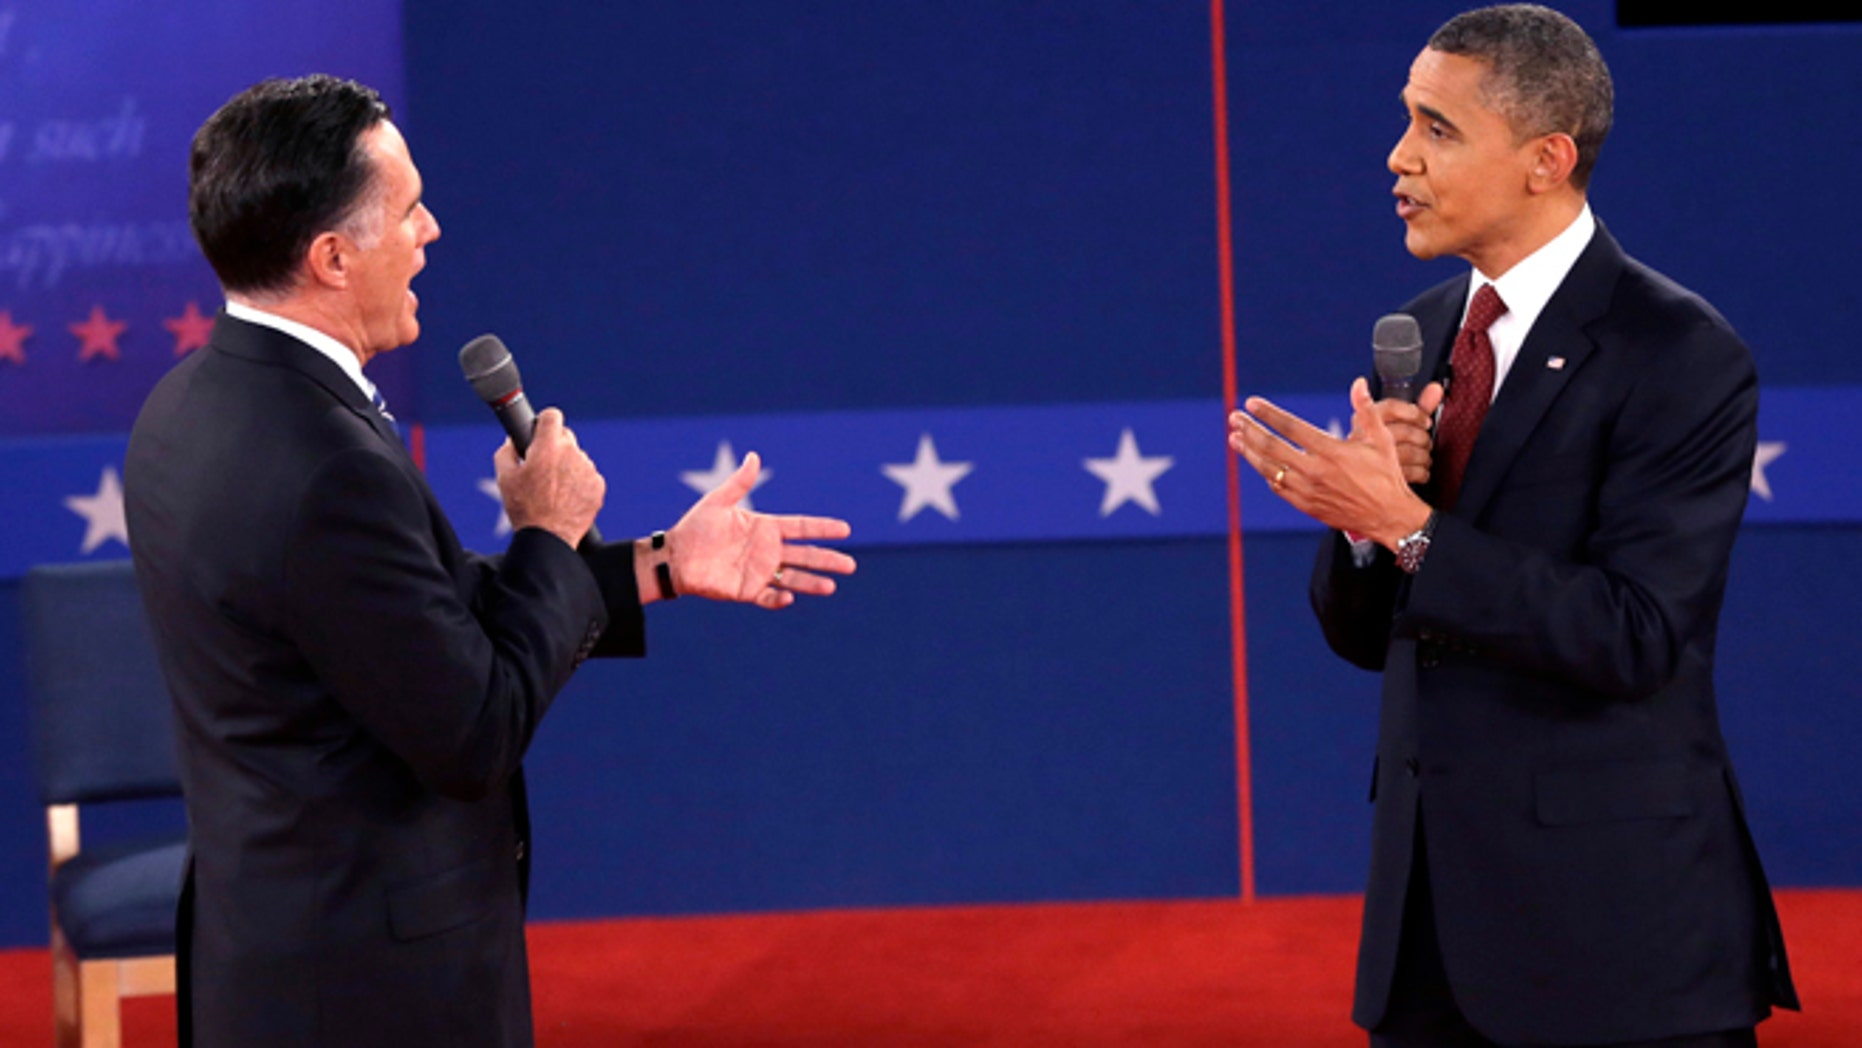 Oct. 16, 2012: Republican presidential nominee Mitt Romney and President Barack Obama speak during the second presidential debate.